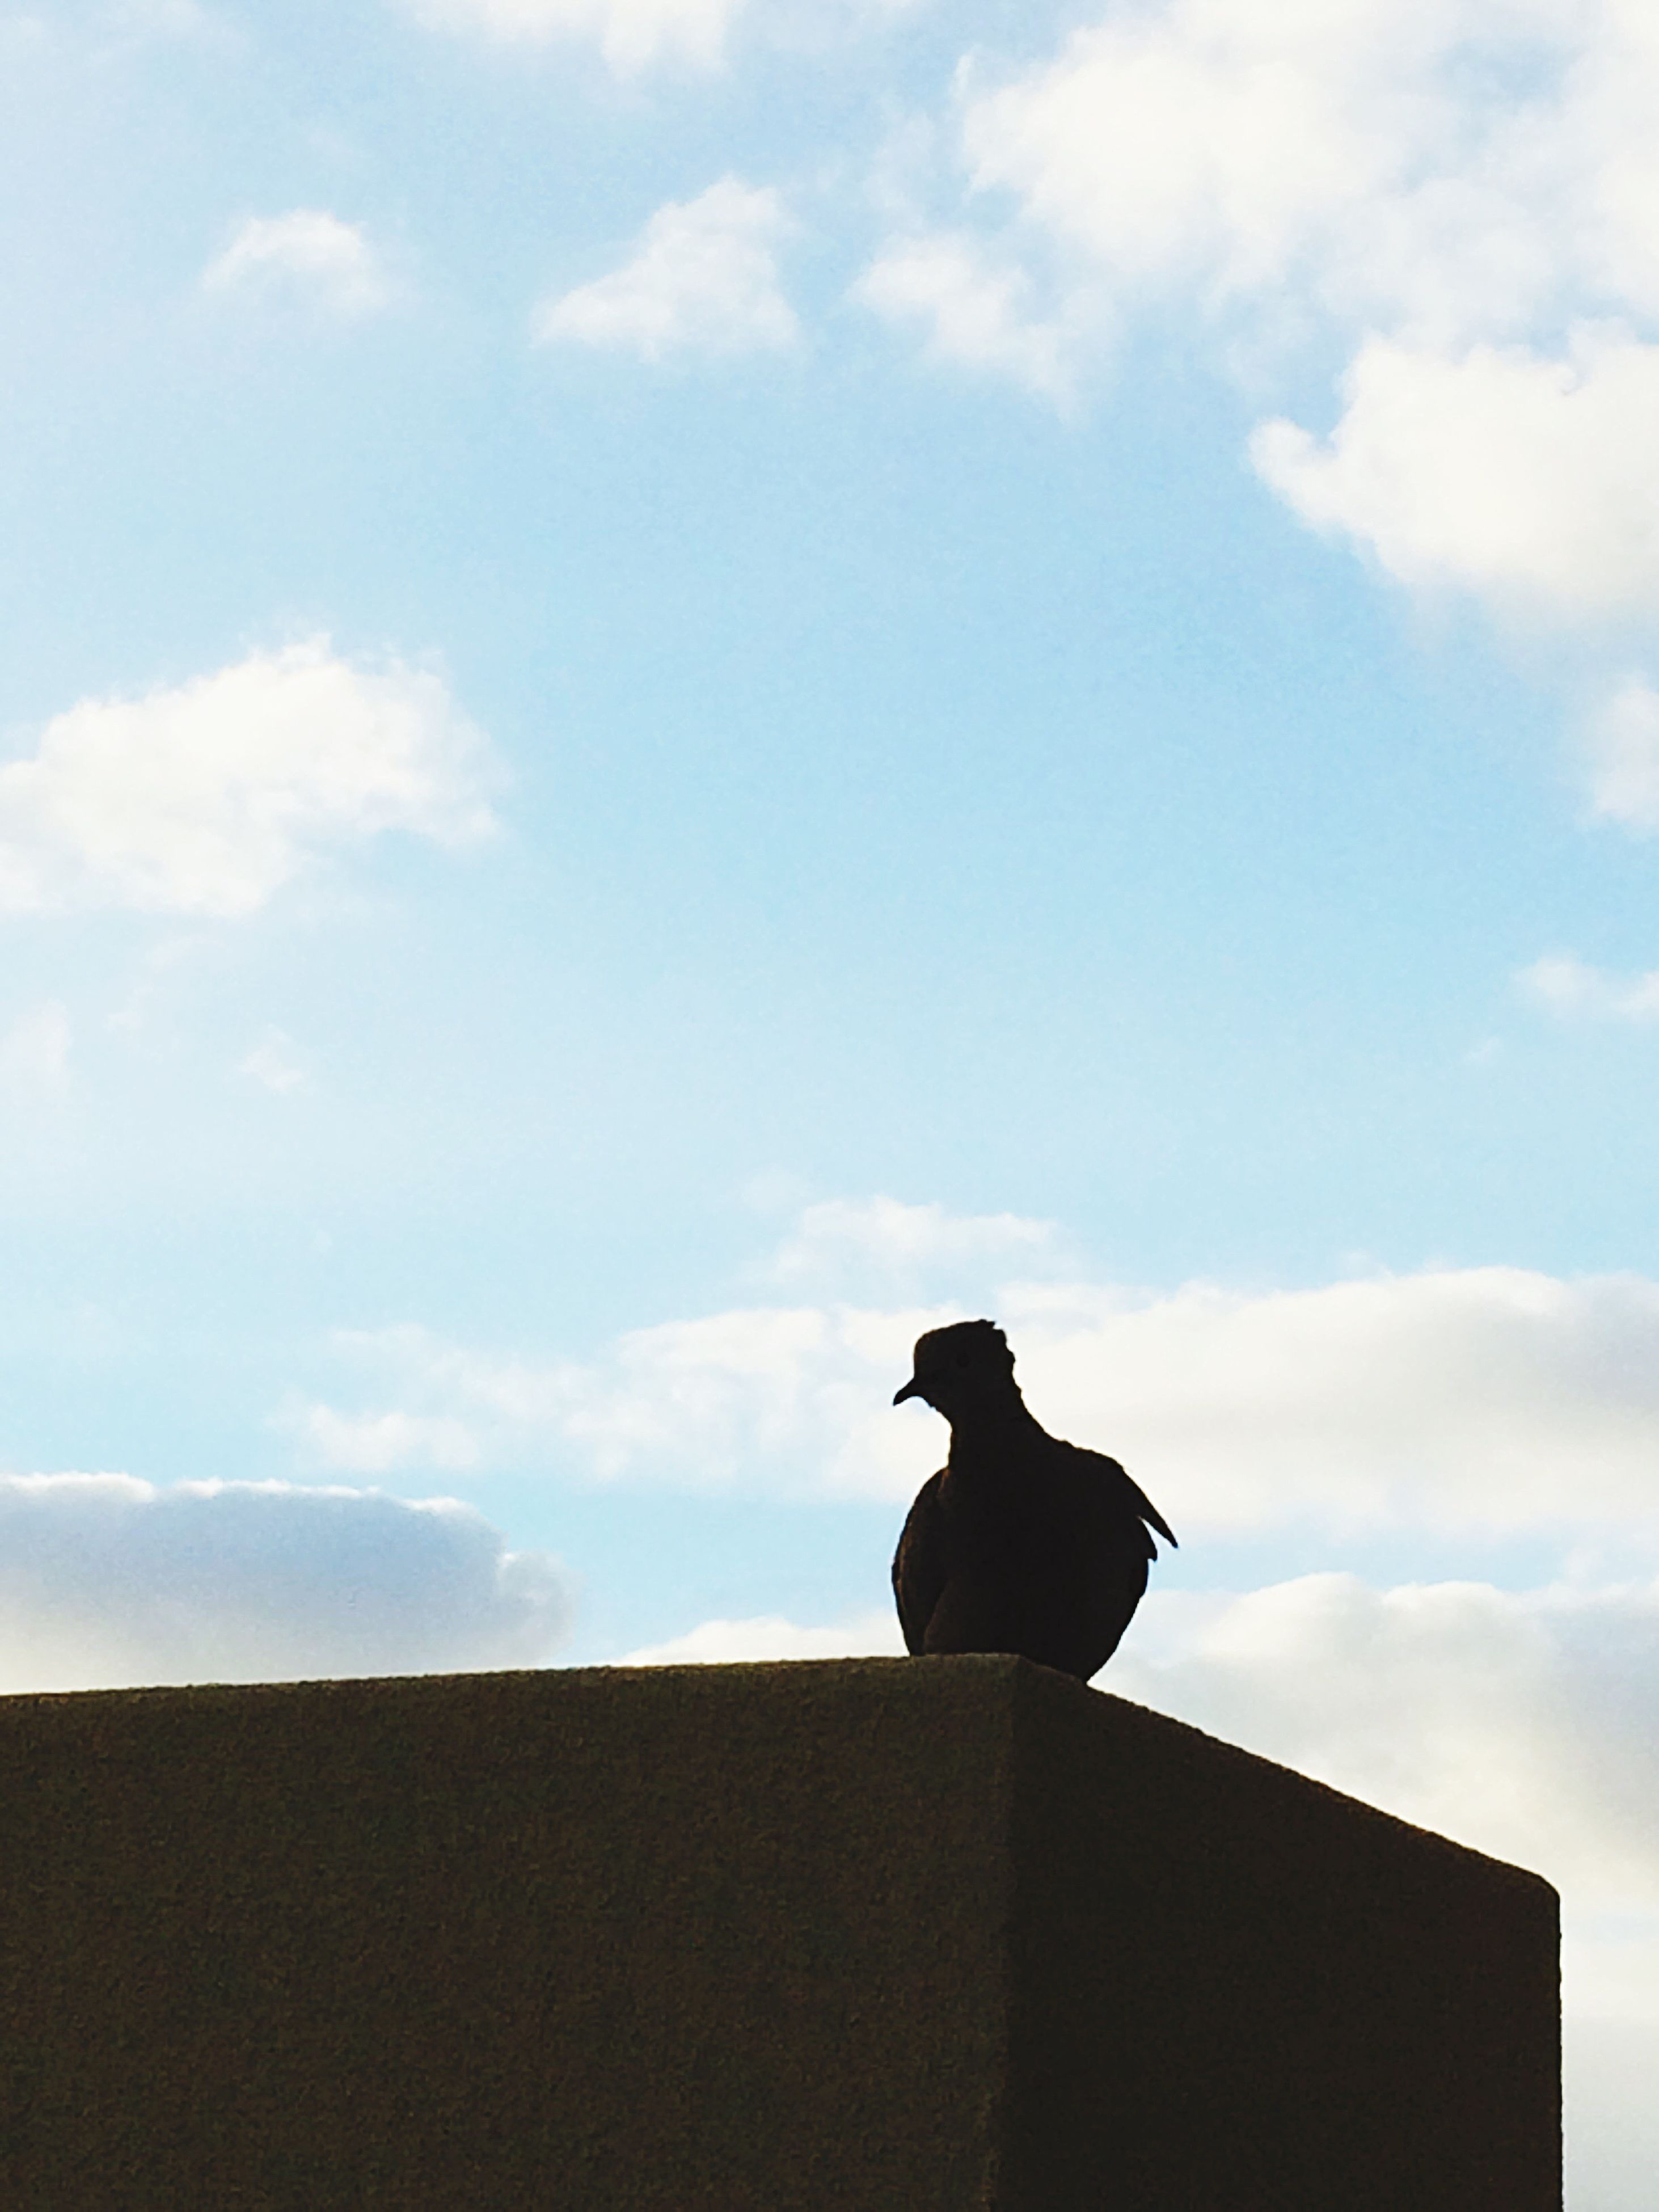 sky, animal themes, silhouette, one animal, low angle view, cloud - sky, cloud, statue, sitting, mammal, animals in the wild, sculpture, wildlife, animal representation, roof, outdoors, nature, cloudy, on top of, built structure